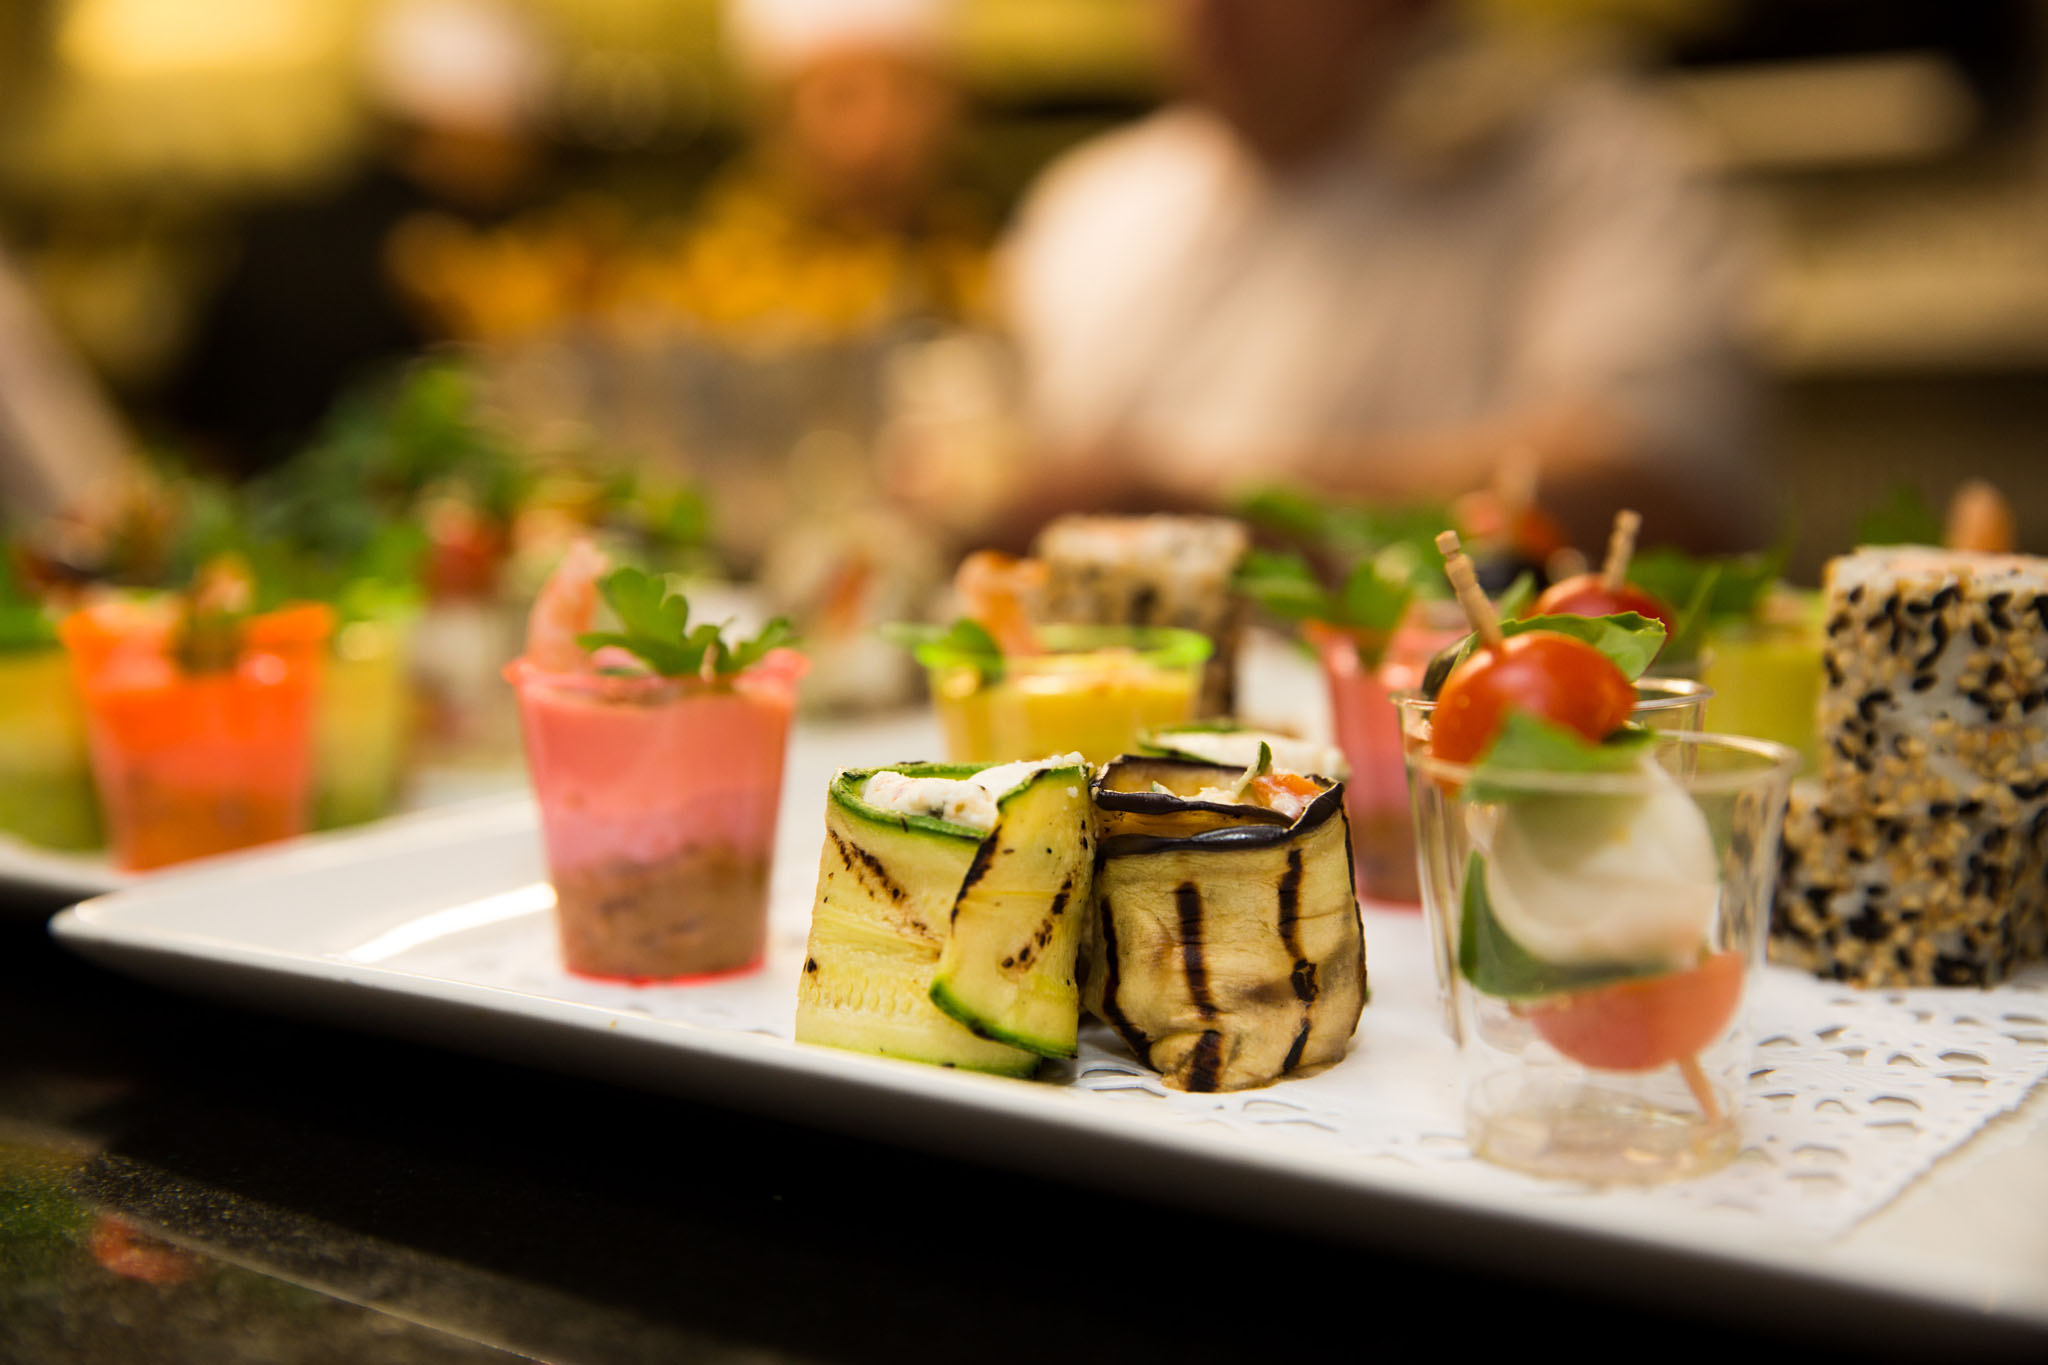 Canapes at a ruby wedding at Colshaw Hall, Knutsford, Cheshire